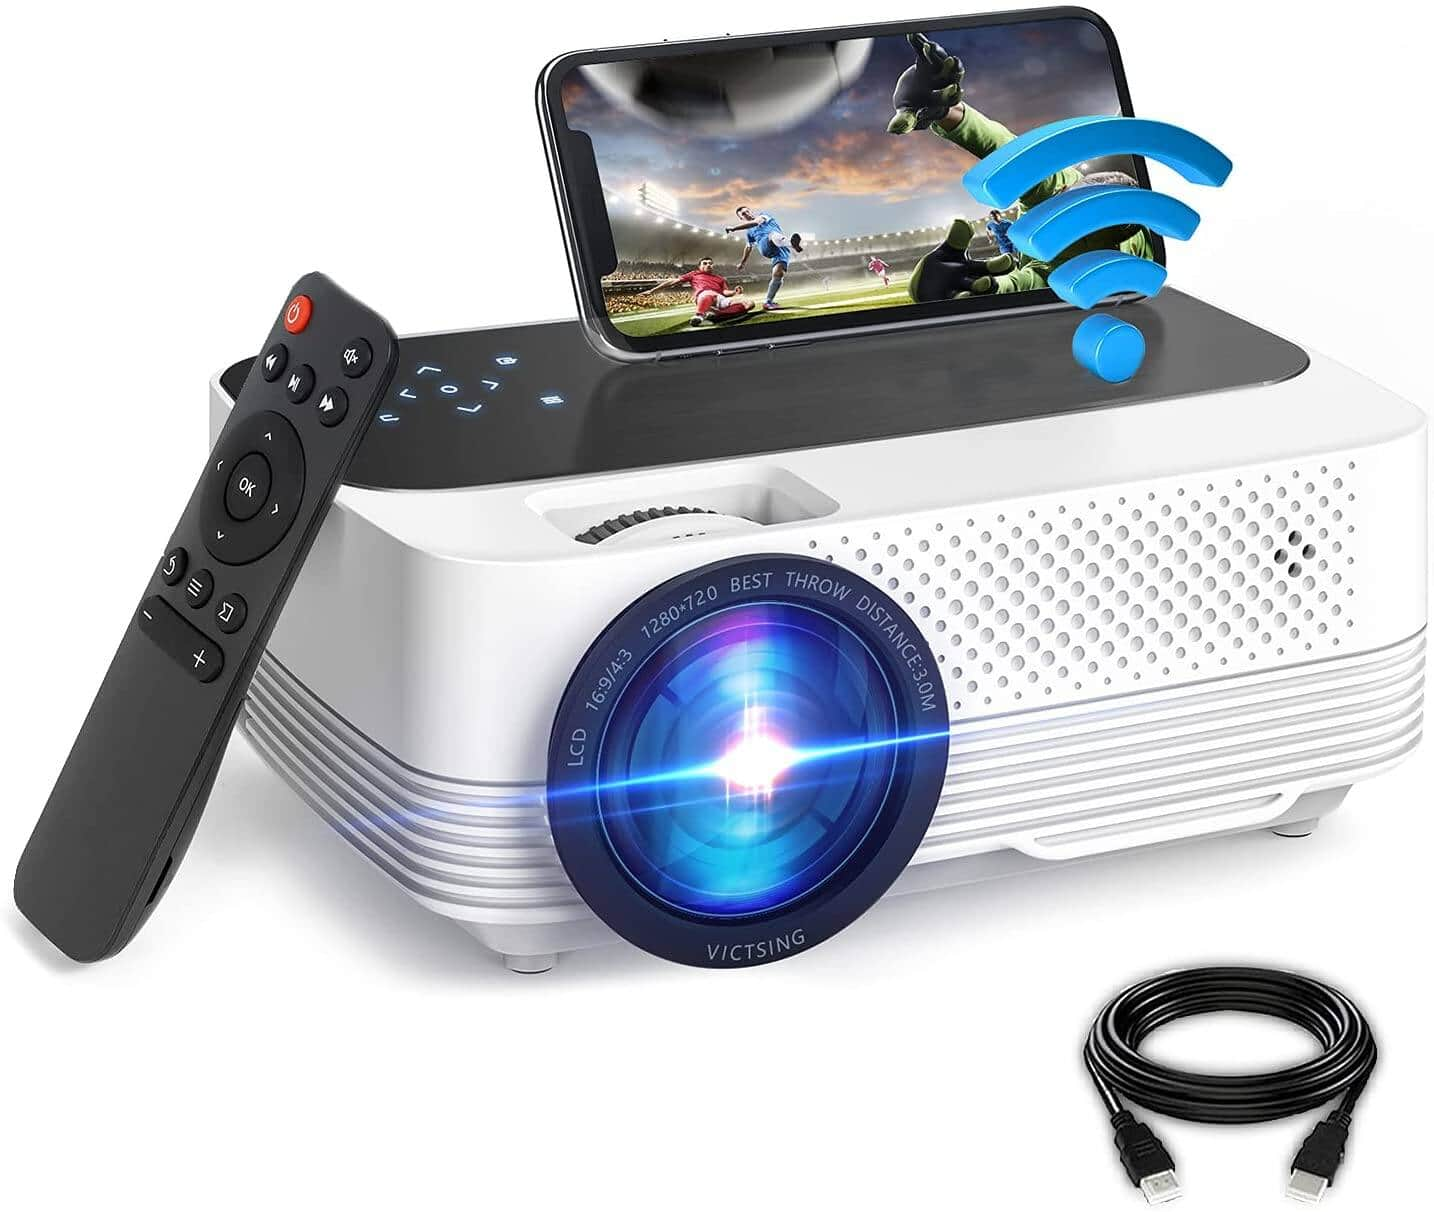 VicTsing 6000L WiFi Portable Home Theater Projector $68.39 + Free Shipping